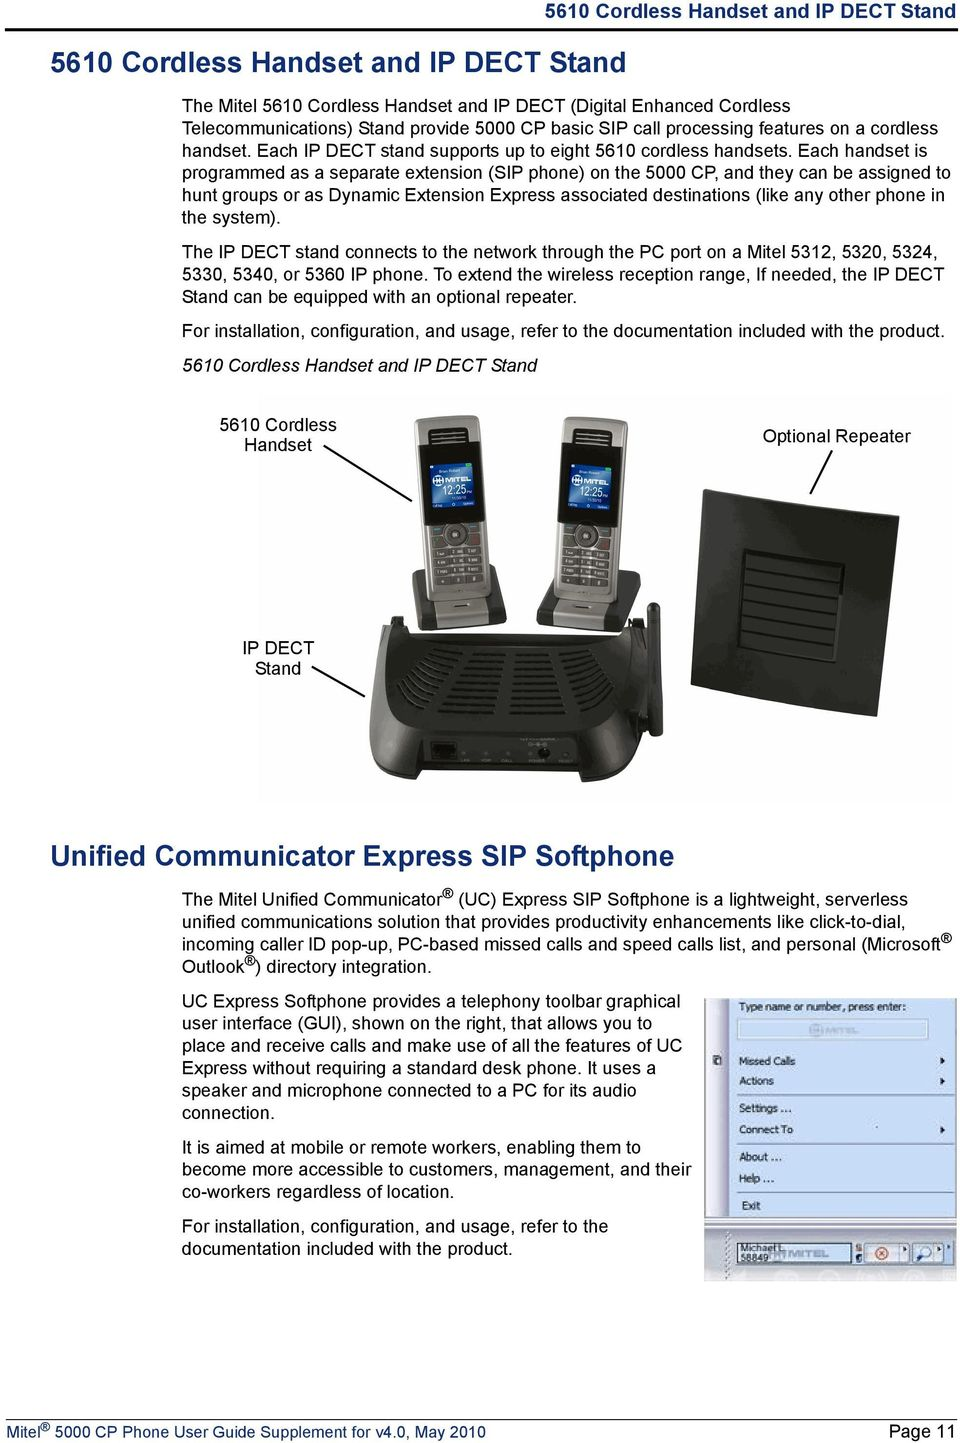 Each handset is programmed as a separate extension (SIP phone) on the 5000 CP, and they can be assigned to hunt groups or as Dynamic Extension Express associated destinations (like any other phone in